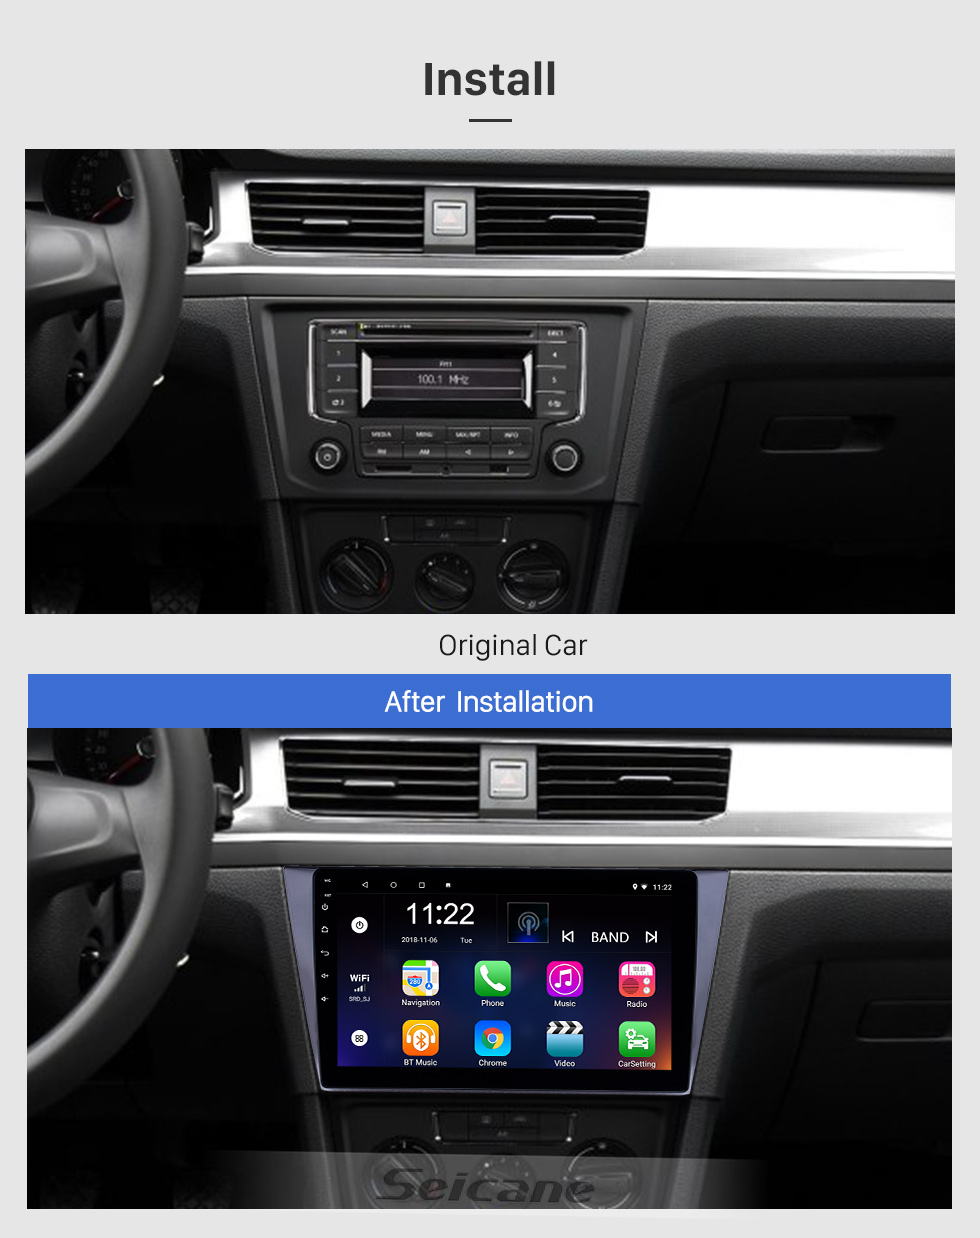 Seicane 10,1 pouces Android 8.1 Radio de navigation GPS pour 2016-2018 VW Volkswagen Bora avec support tactile HD Bluetooth WIFI Carplay SWC